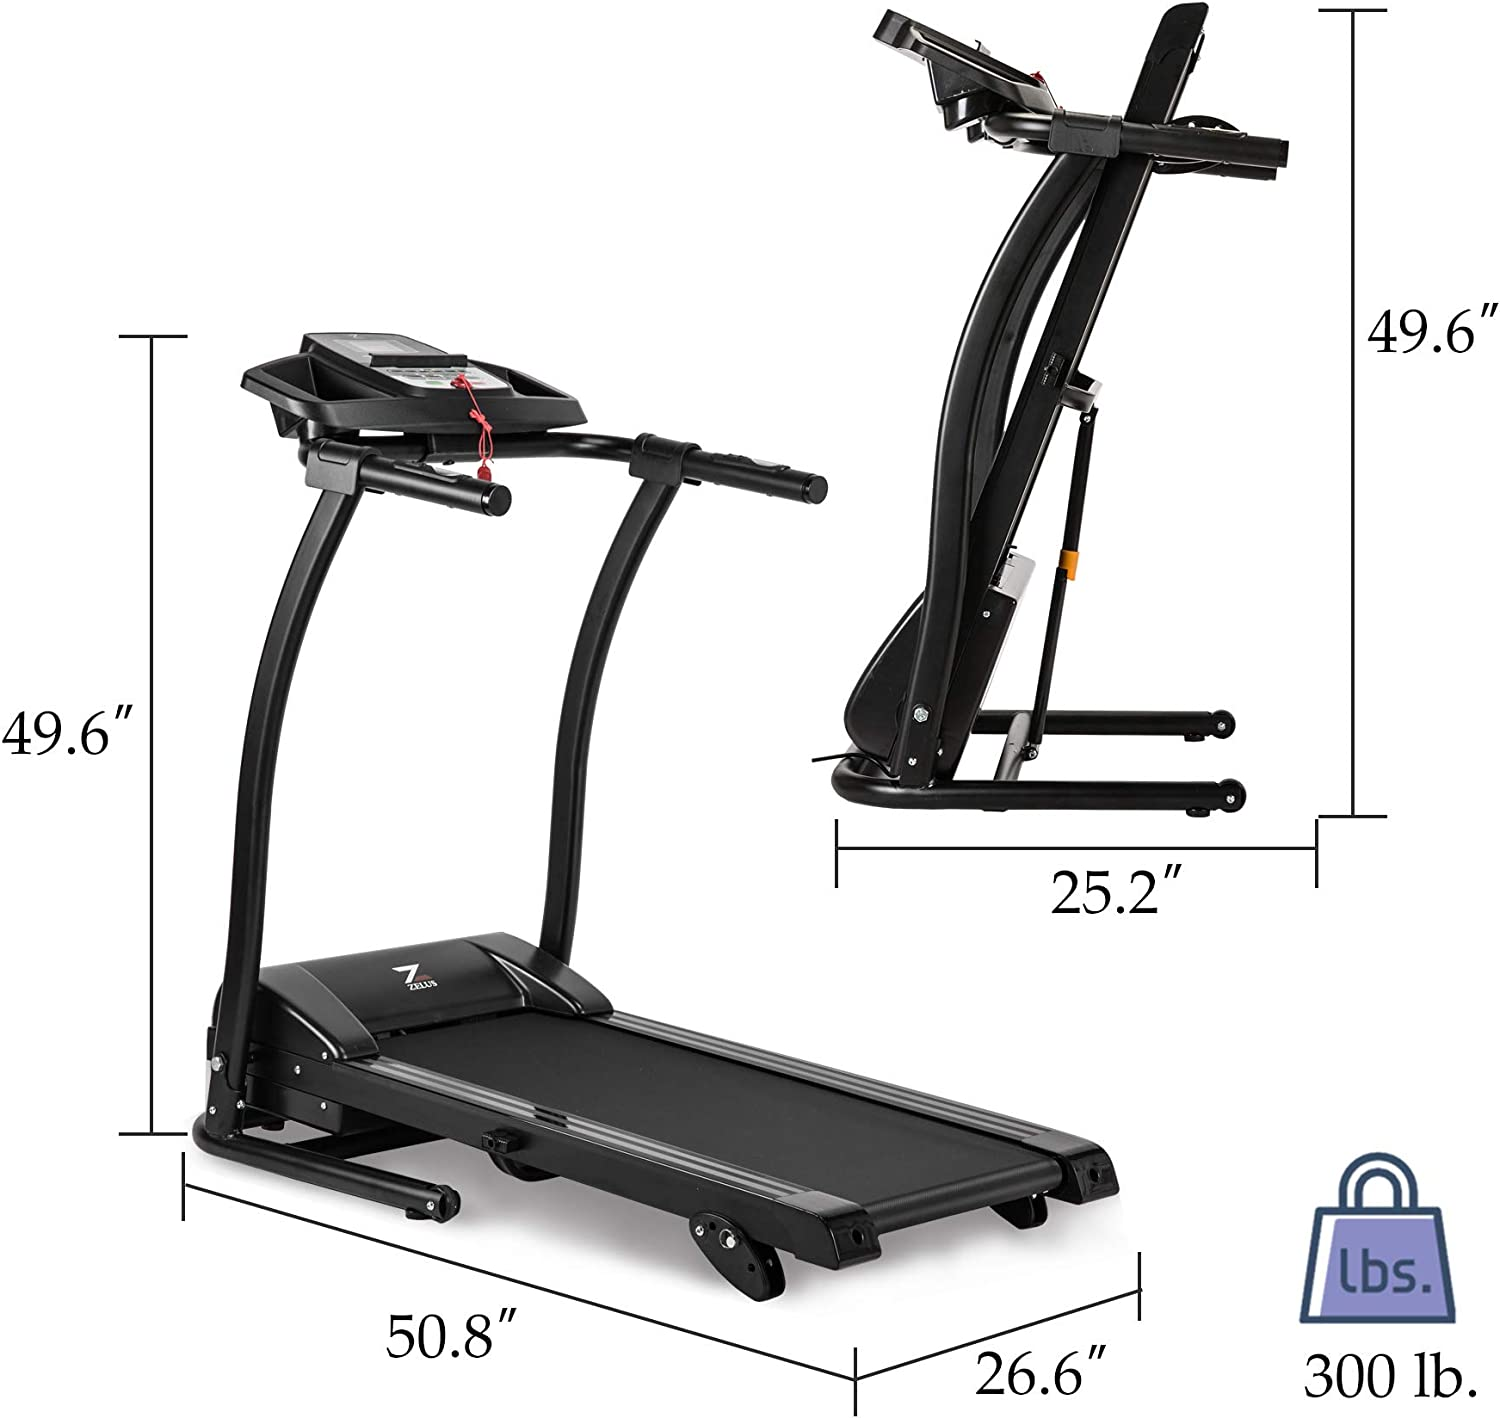 ZELUS 1100W Folding Treadmill Electric Motorized Running Machine with Downloadable Sports App Control Walking and Running, Cup Holder, MP3 Player and Wheels Easy Upgraded Treadmill with Mat